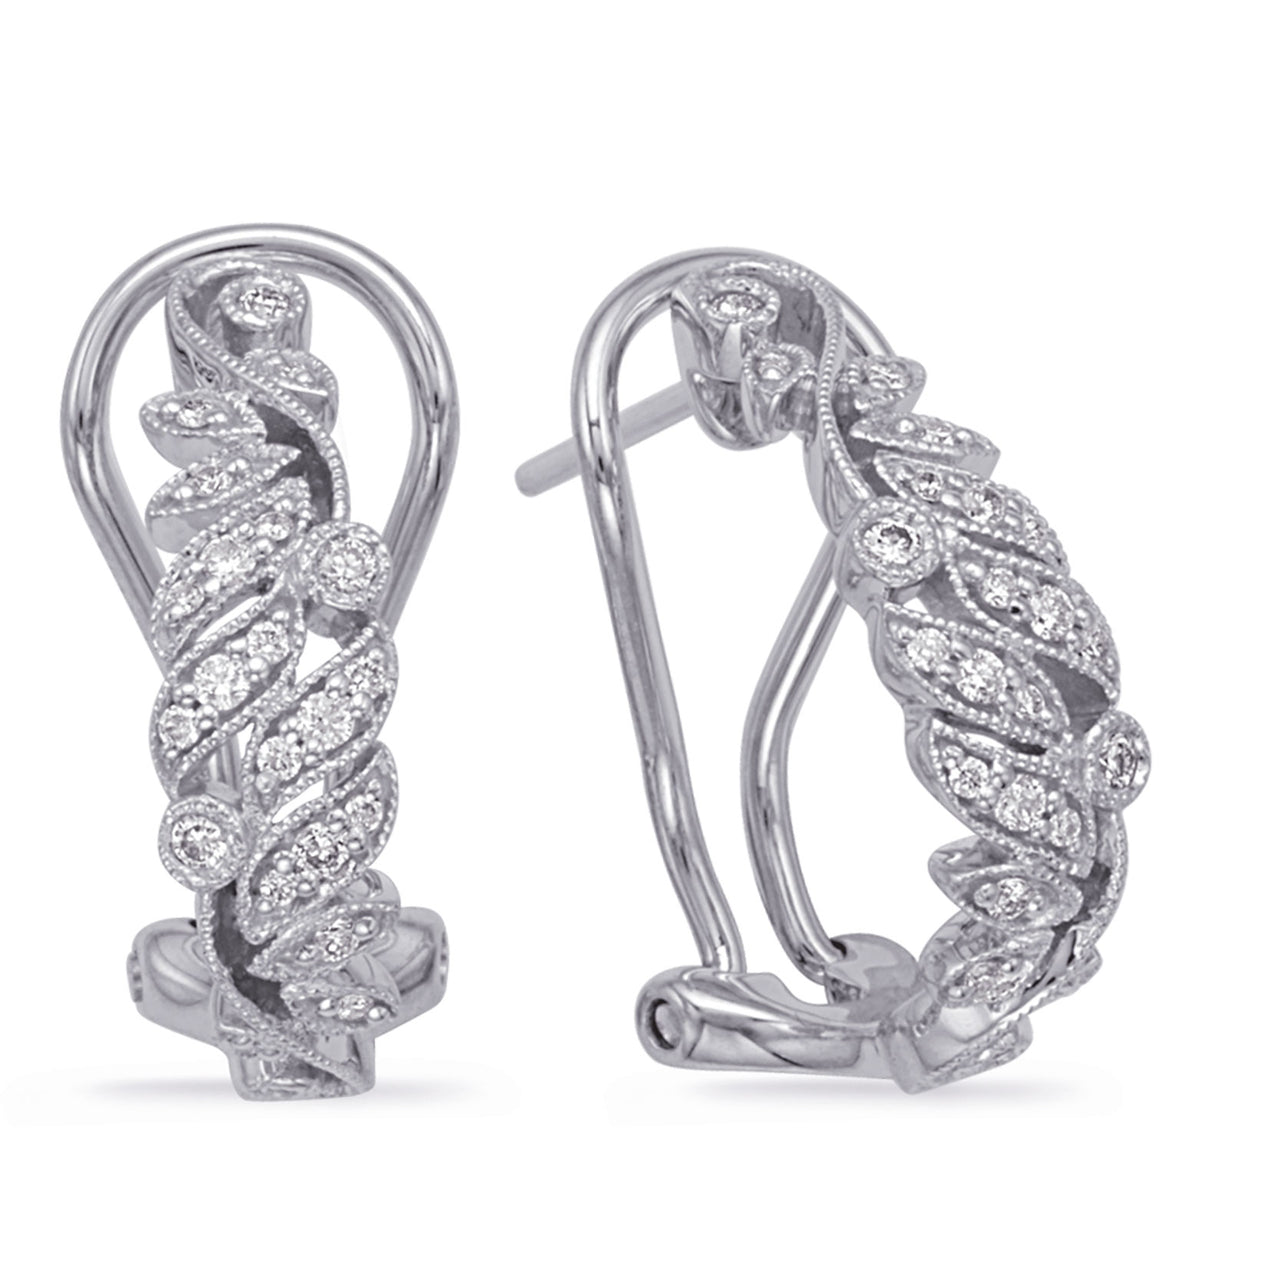 14K White Gold Diamond Earrings.#1090-E7996WG